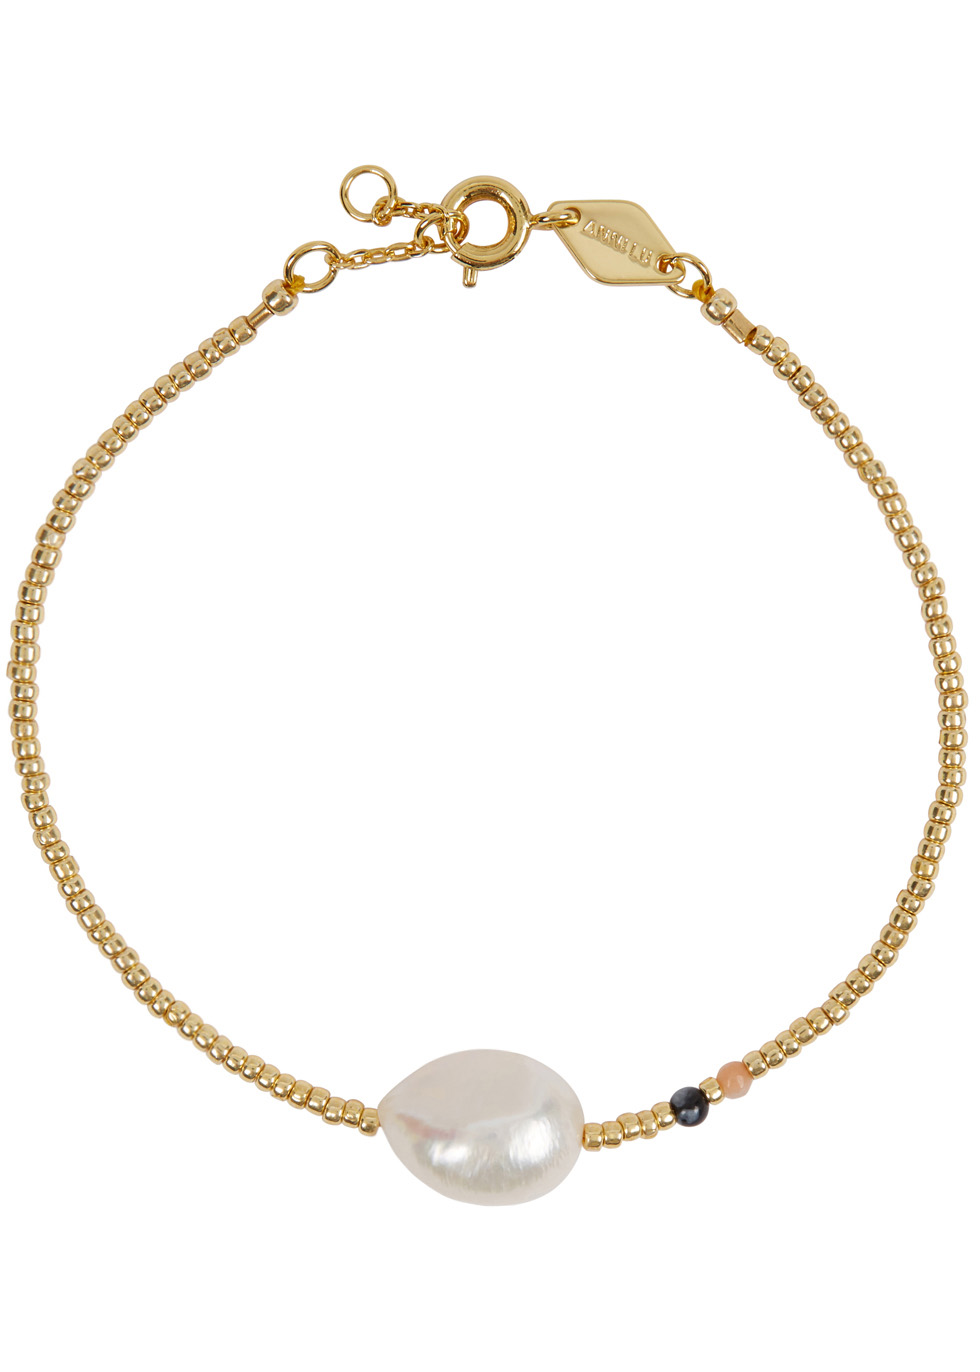 ANNI LU BAROQUE PEARL 18CT GOLD-PLATED BRACELET